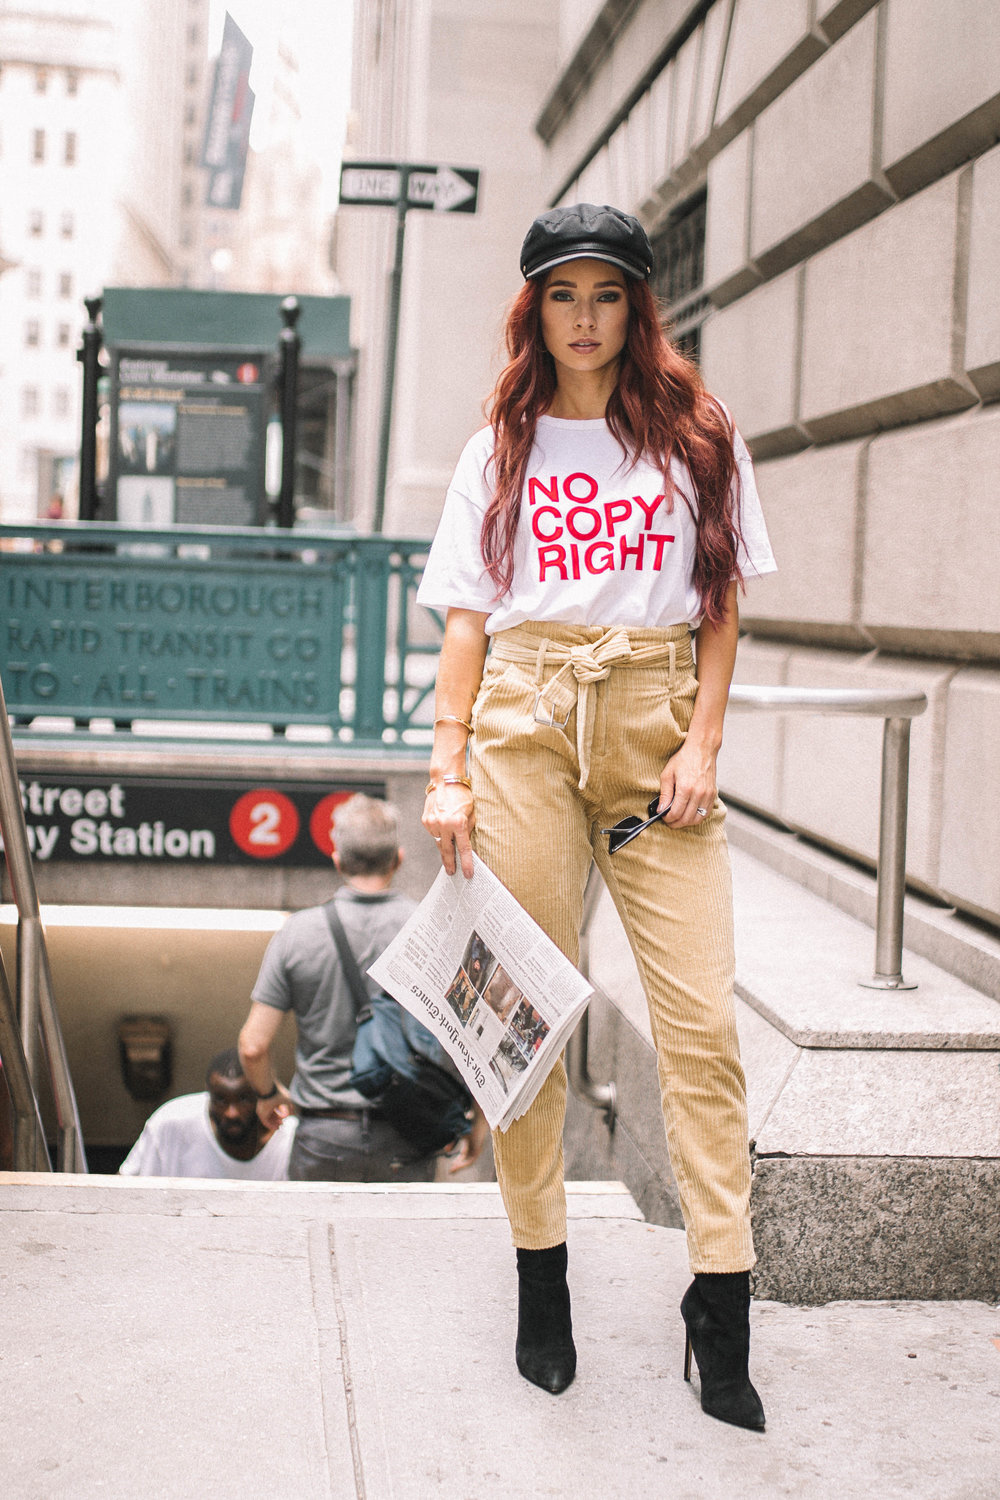 NYFW featured by popular Indianapolis fashion blogger, Trendy in Indy